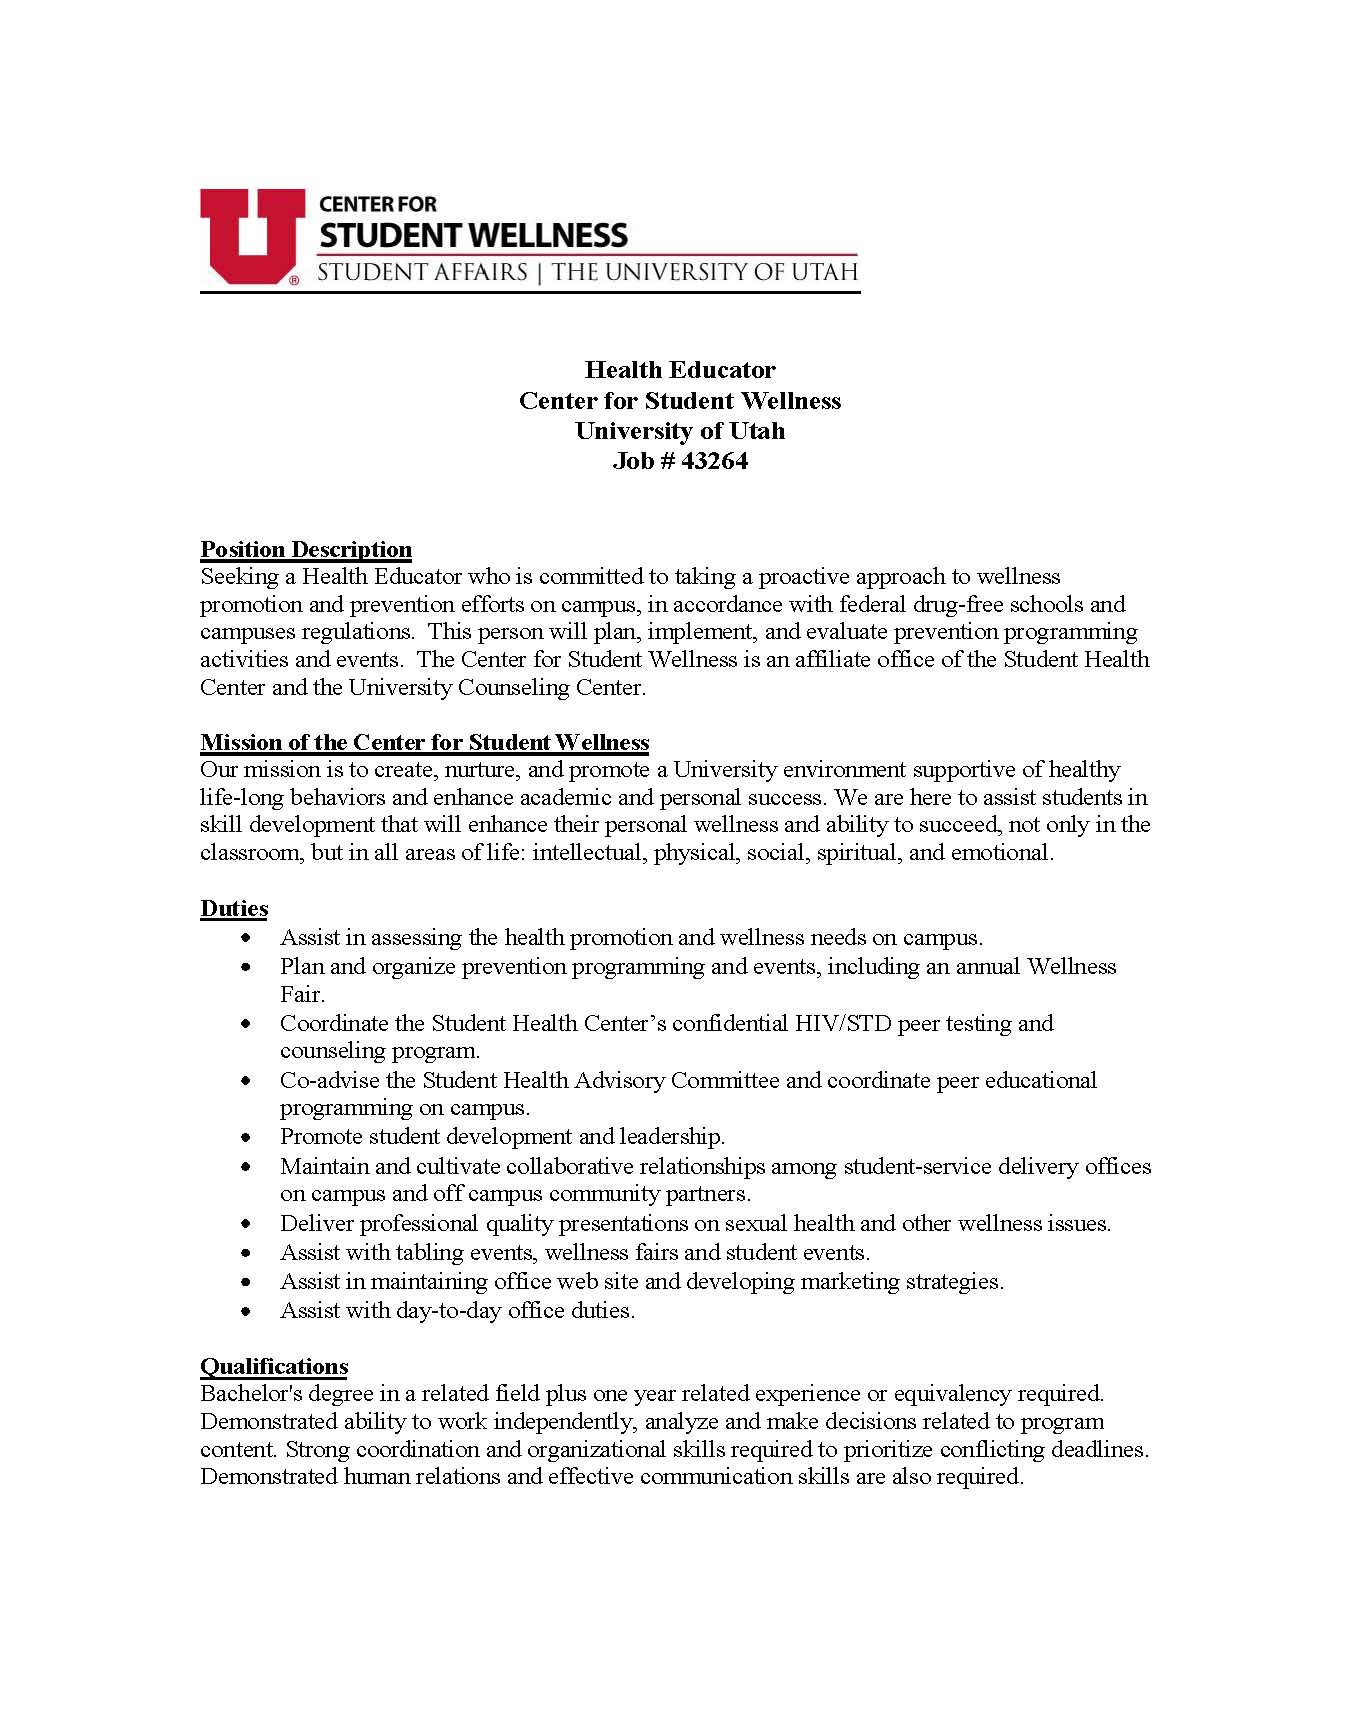 cover letter example for healthcare jobs